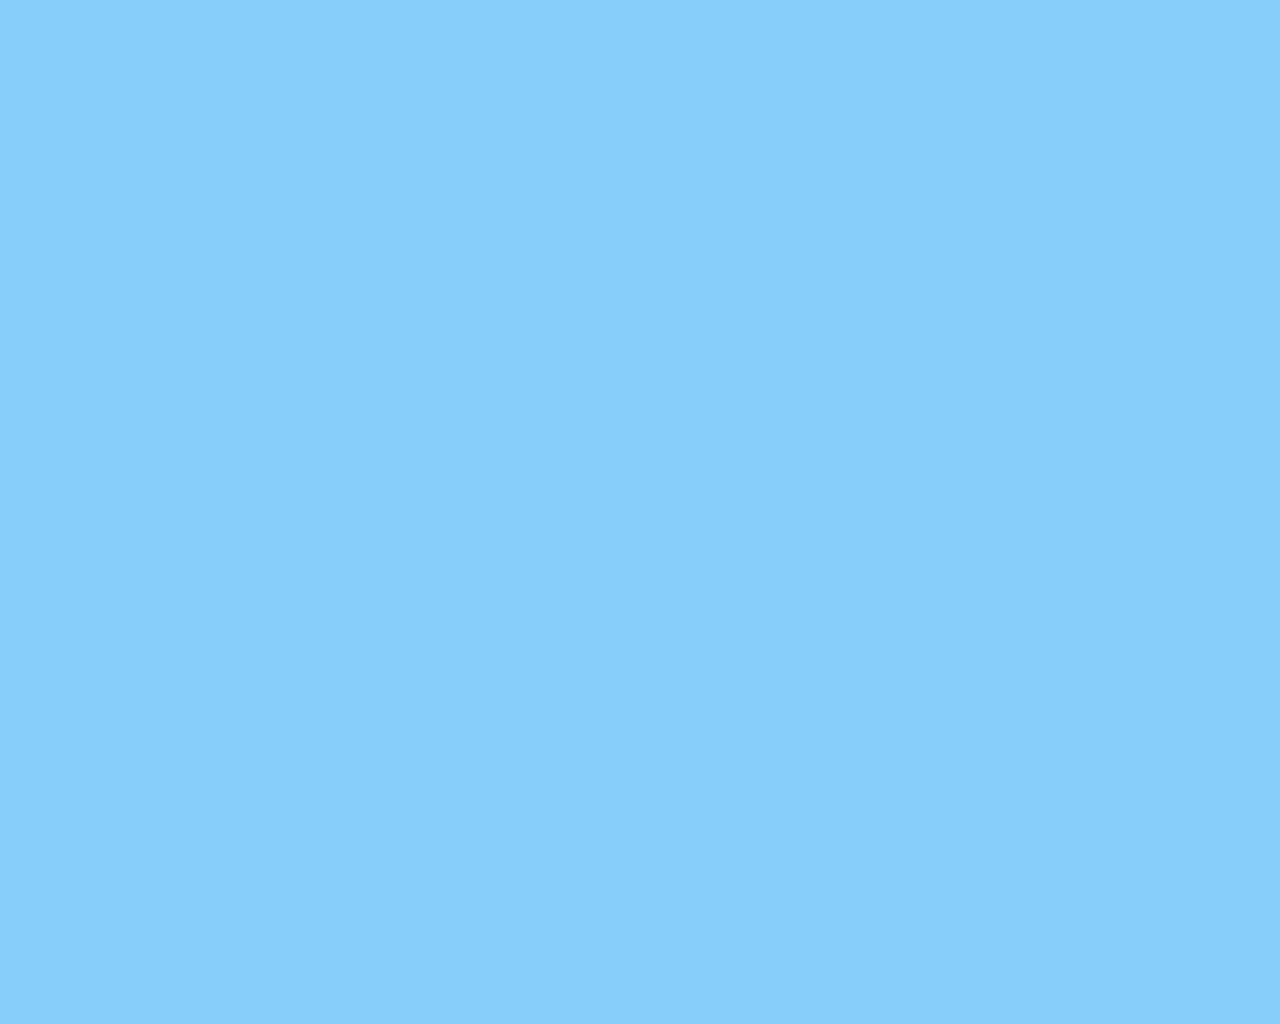 1280x1024 Light Sky Blue Solid Color Background